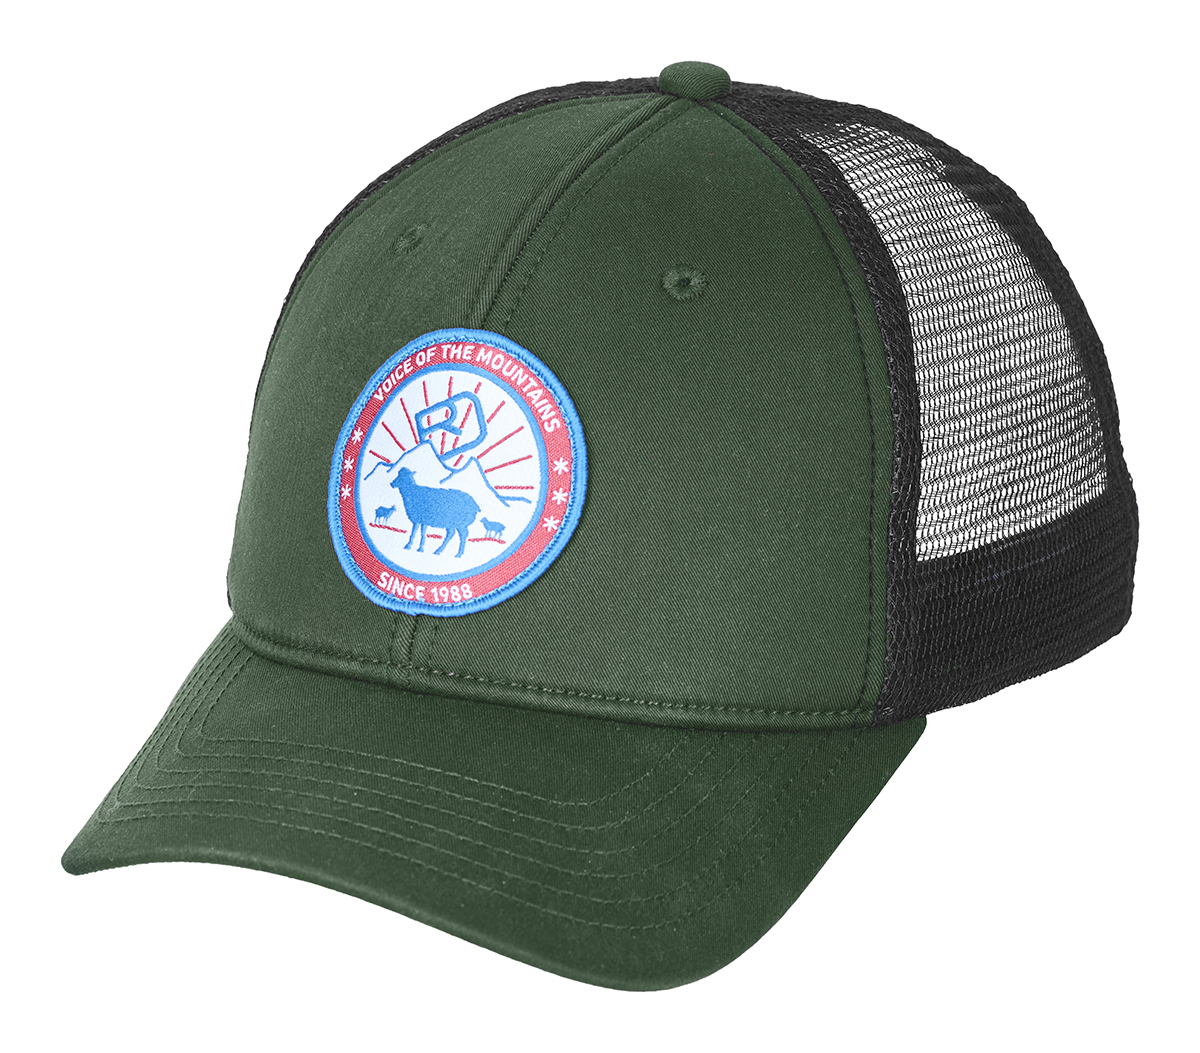 Kšiltovka Ortovox Stay In Sheep Trucker Cap  Green Forrest